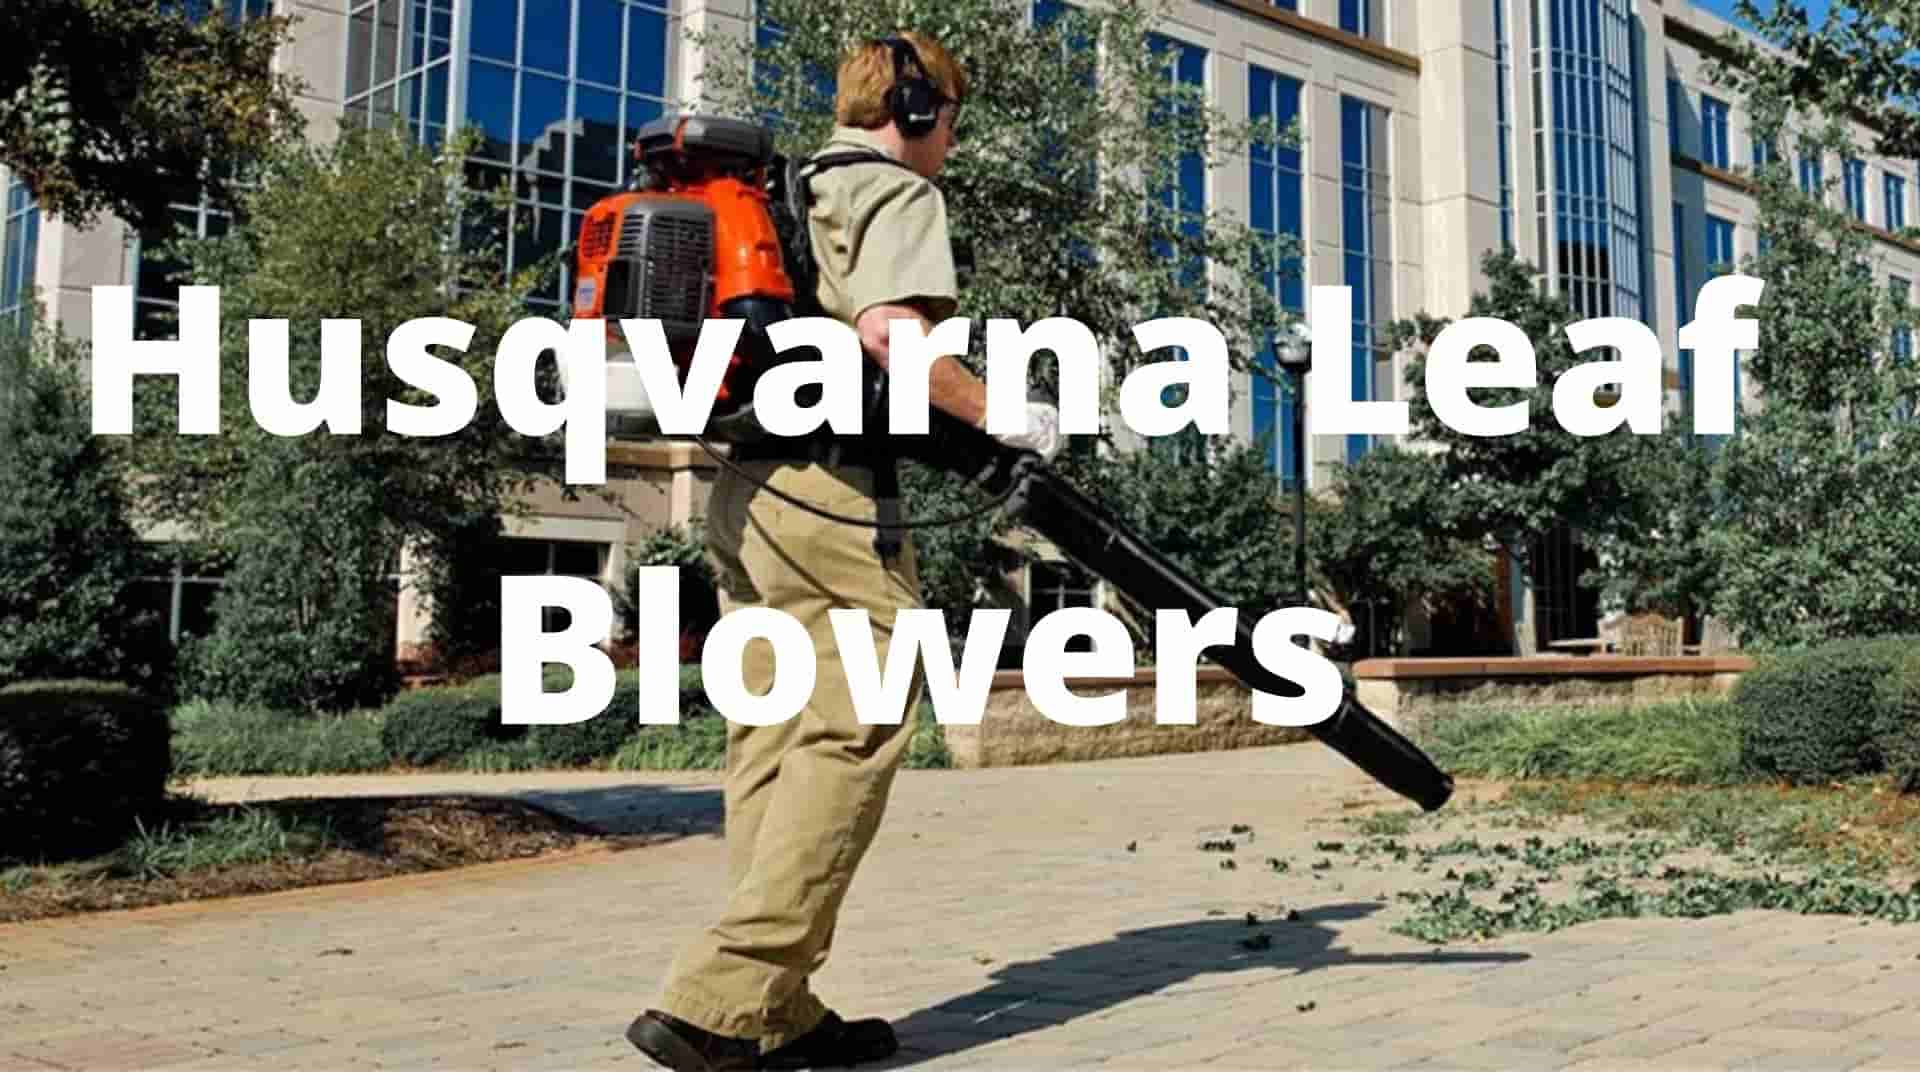 Husqvarna Leaf Blowers